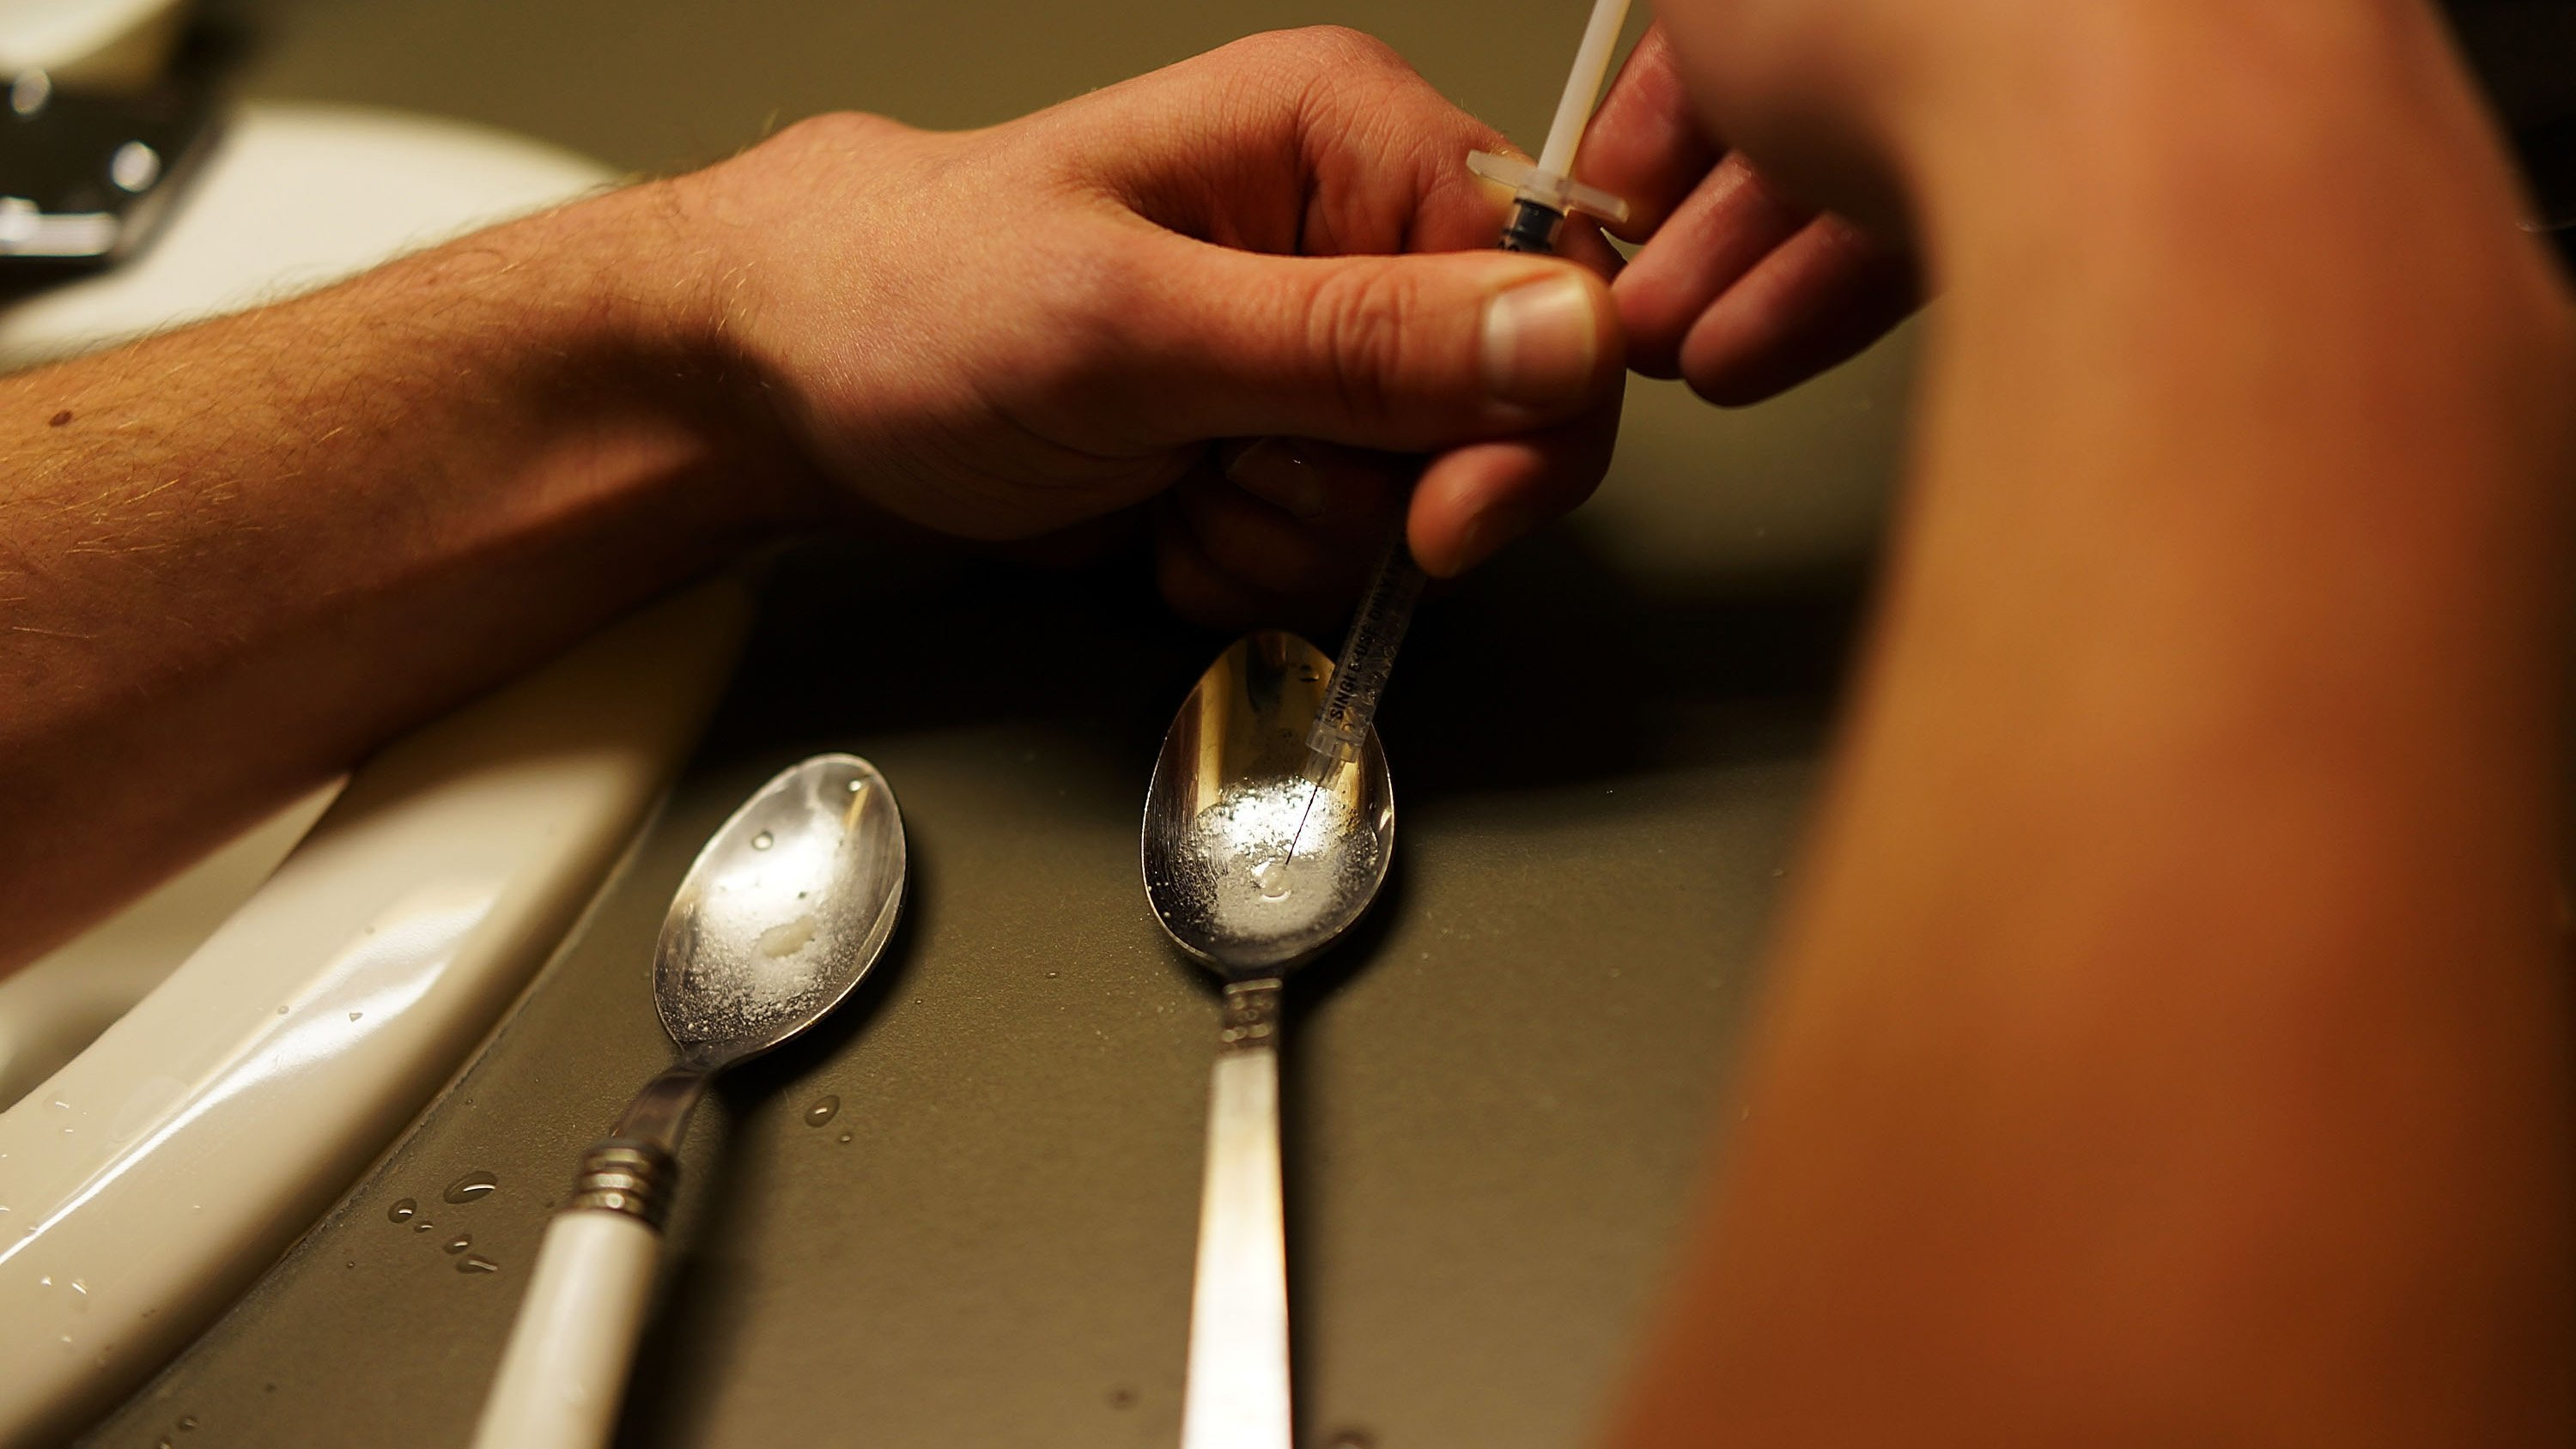 Philadelphia's Government 'Expresses Interest' in Safe Injection Sites